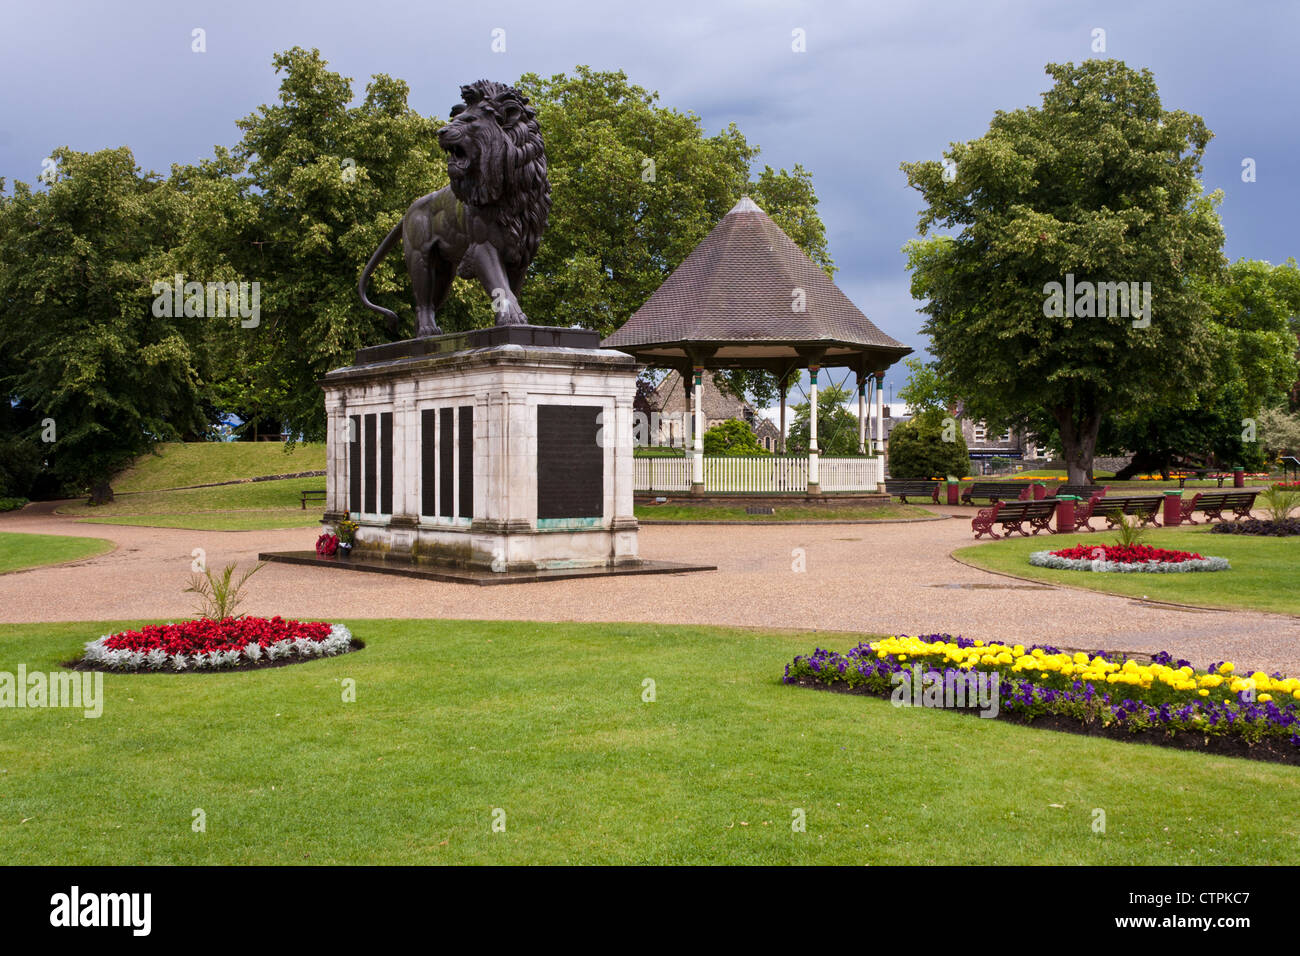 Forbury Gardens, an English public park famous for it's war memorial sculpture of a lion. Stock Photo